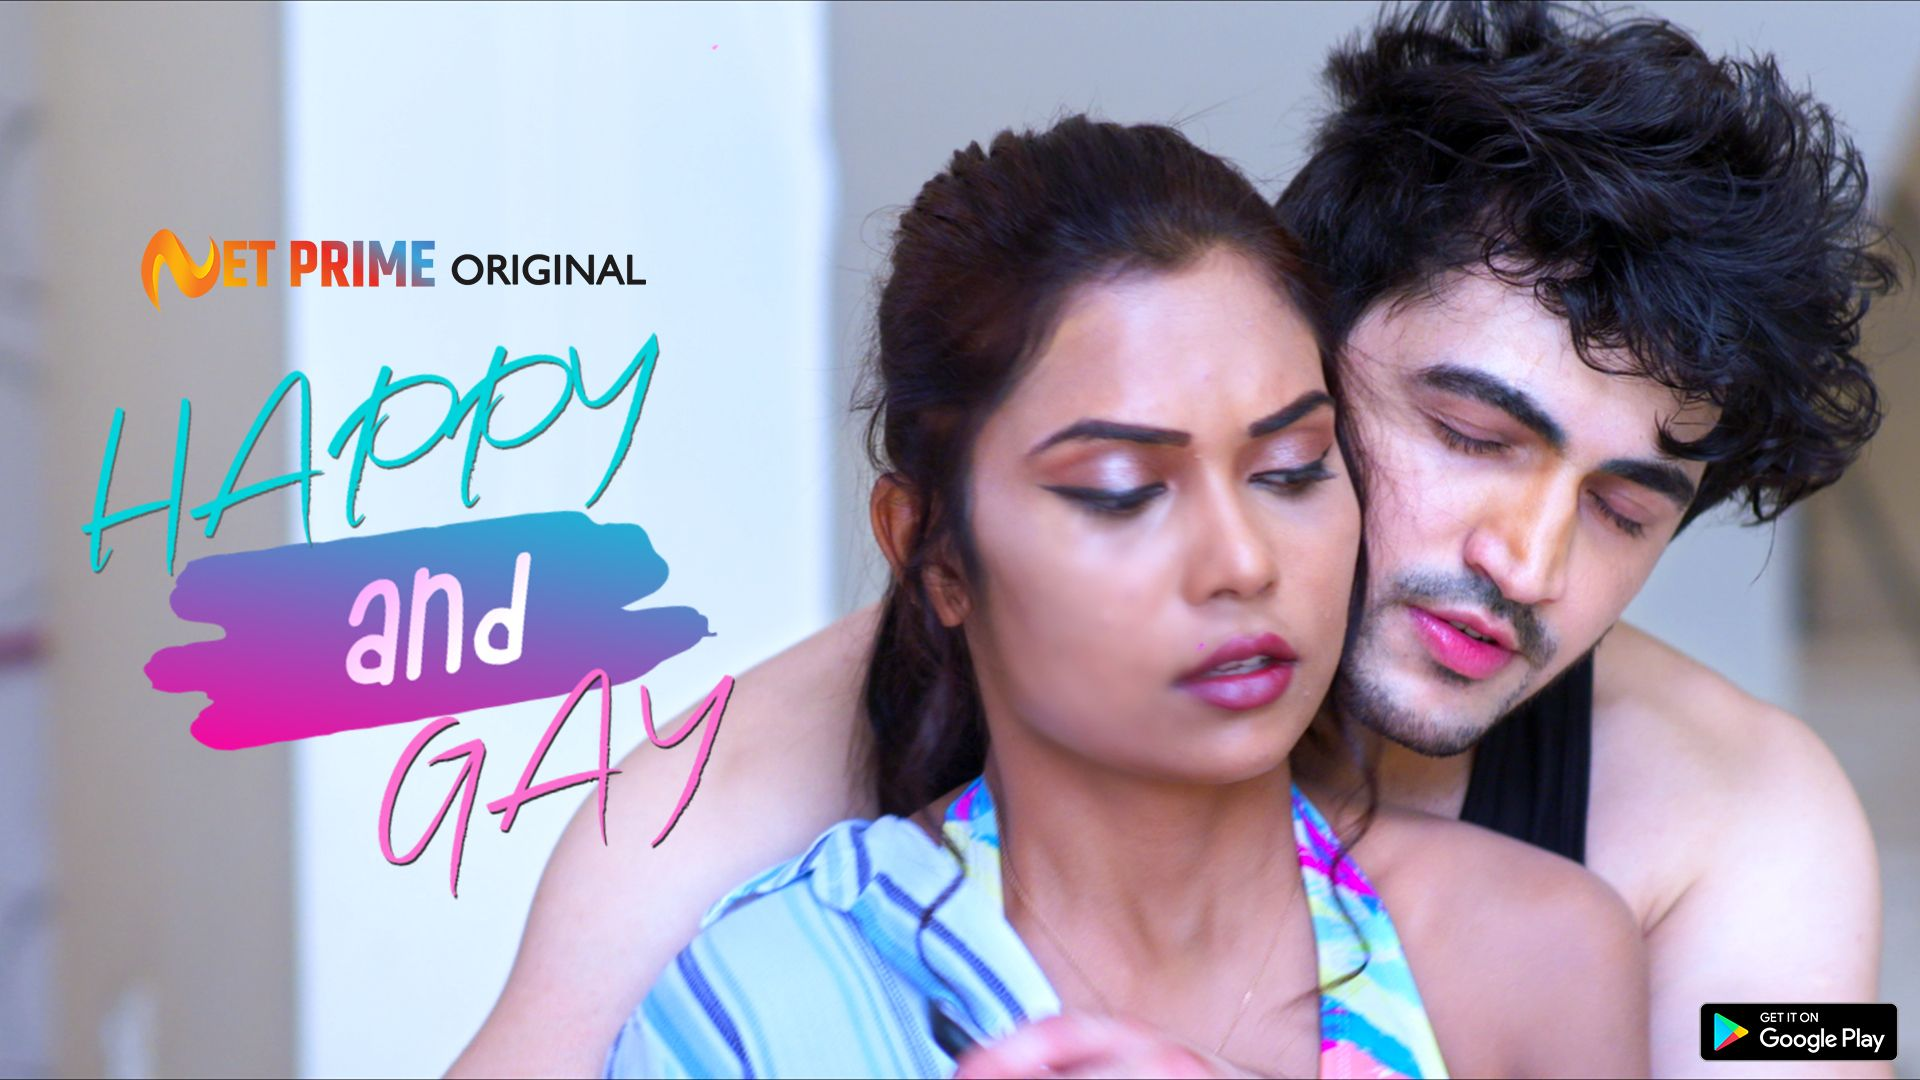 Happy and Gay (2021) UNRATED 720p HEVC HDRip NetPrime Hindi S01E01 Hot Web Series x265 AAC [150MB]